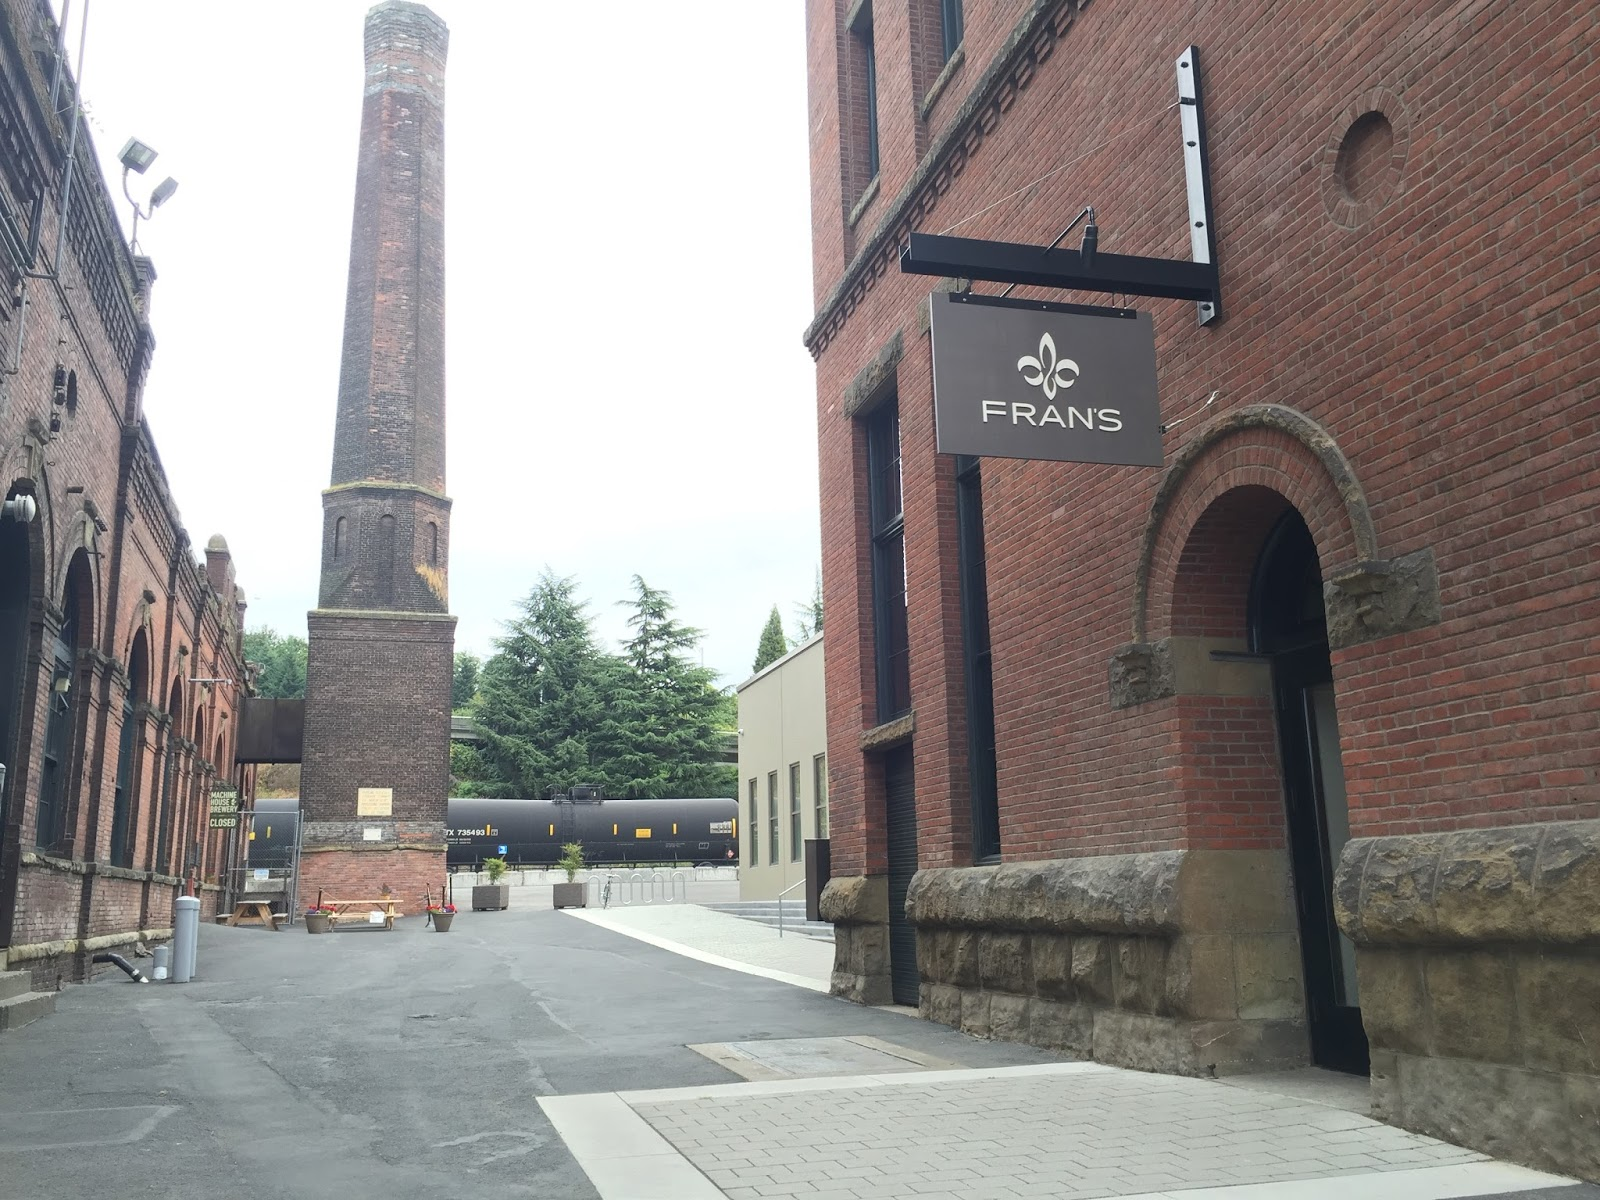 Finding Fine Chocolate: Fran's Chocolates in the Old Rainier Brewery